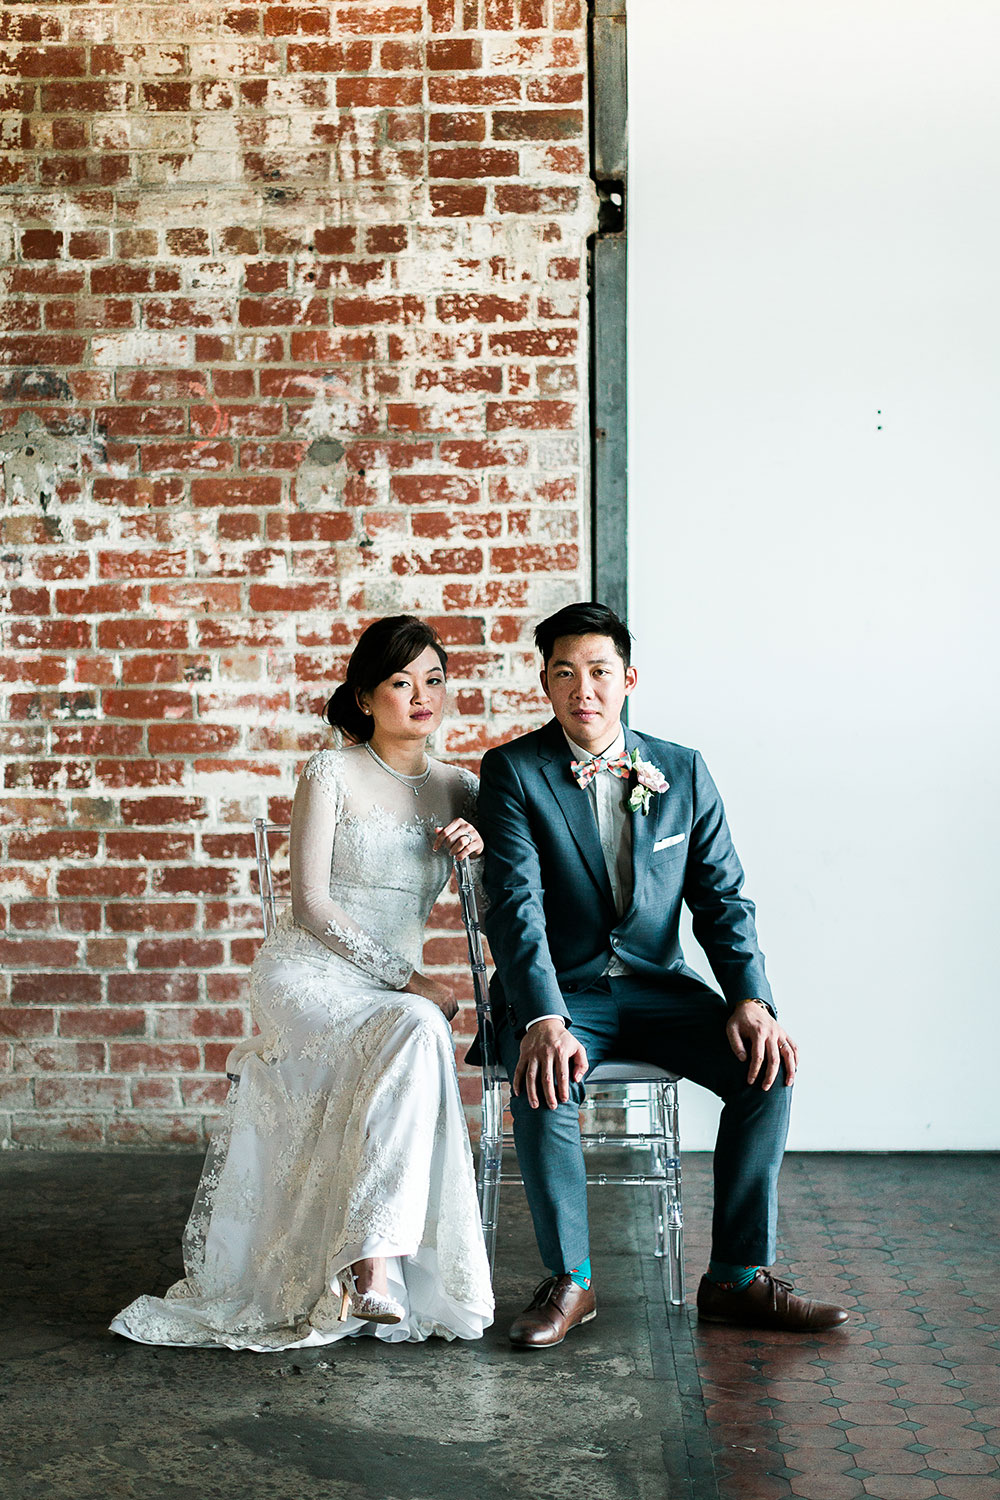 substation-newport-wedding-photographer-tina-dennis-DIY